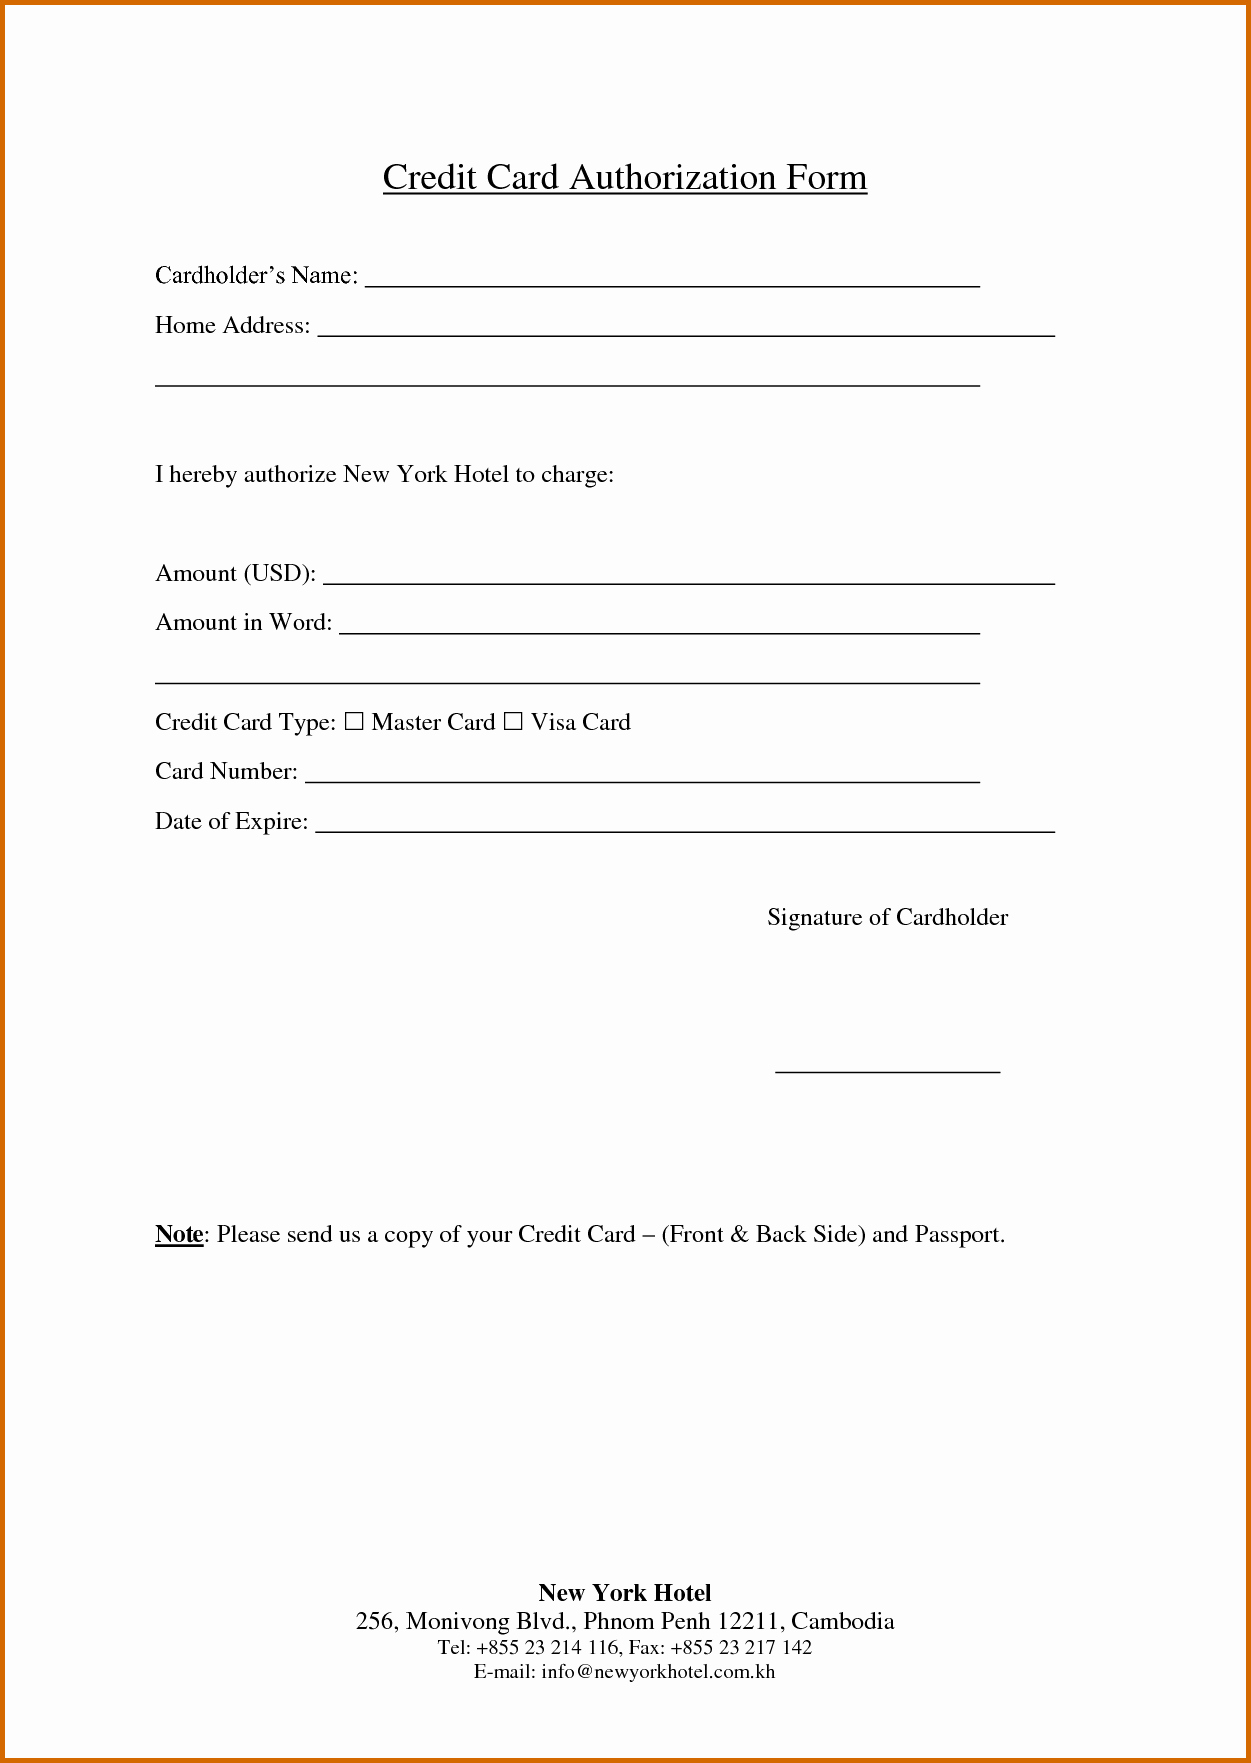 Credit Card Payment Form Template Best Of Printable Intended For Credit Card Authorisation Form Template Australia